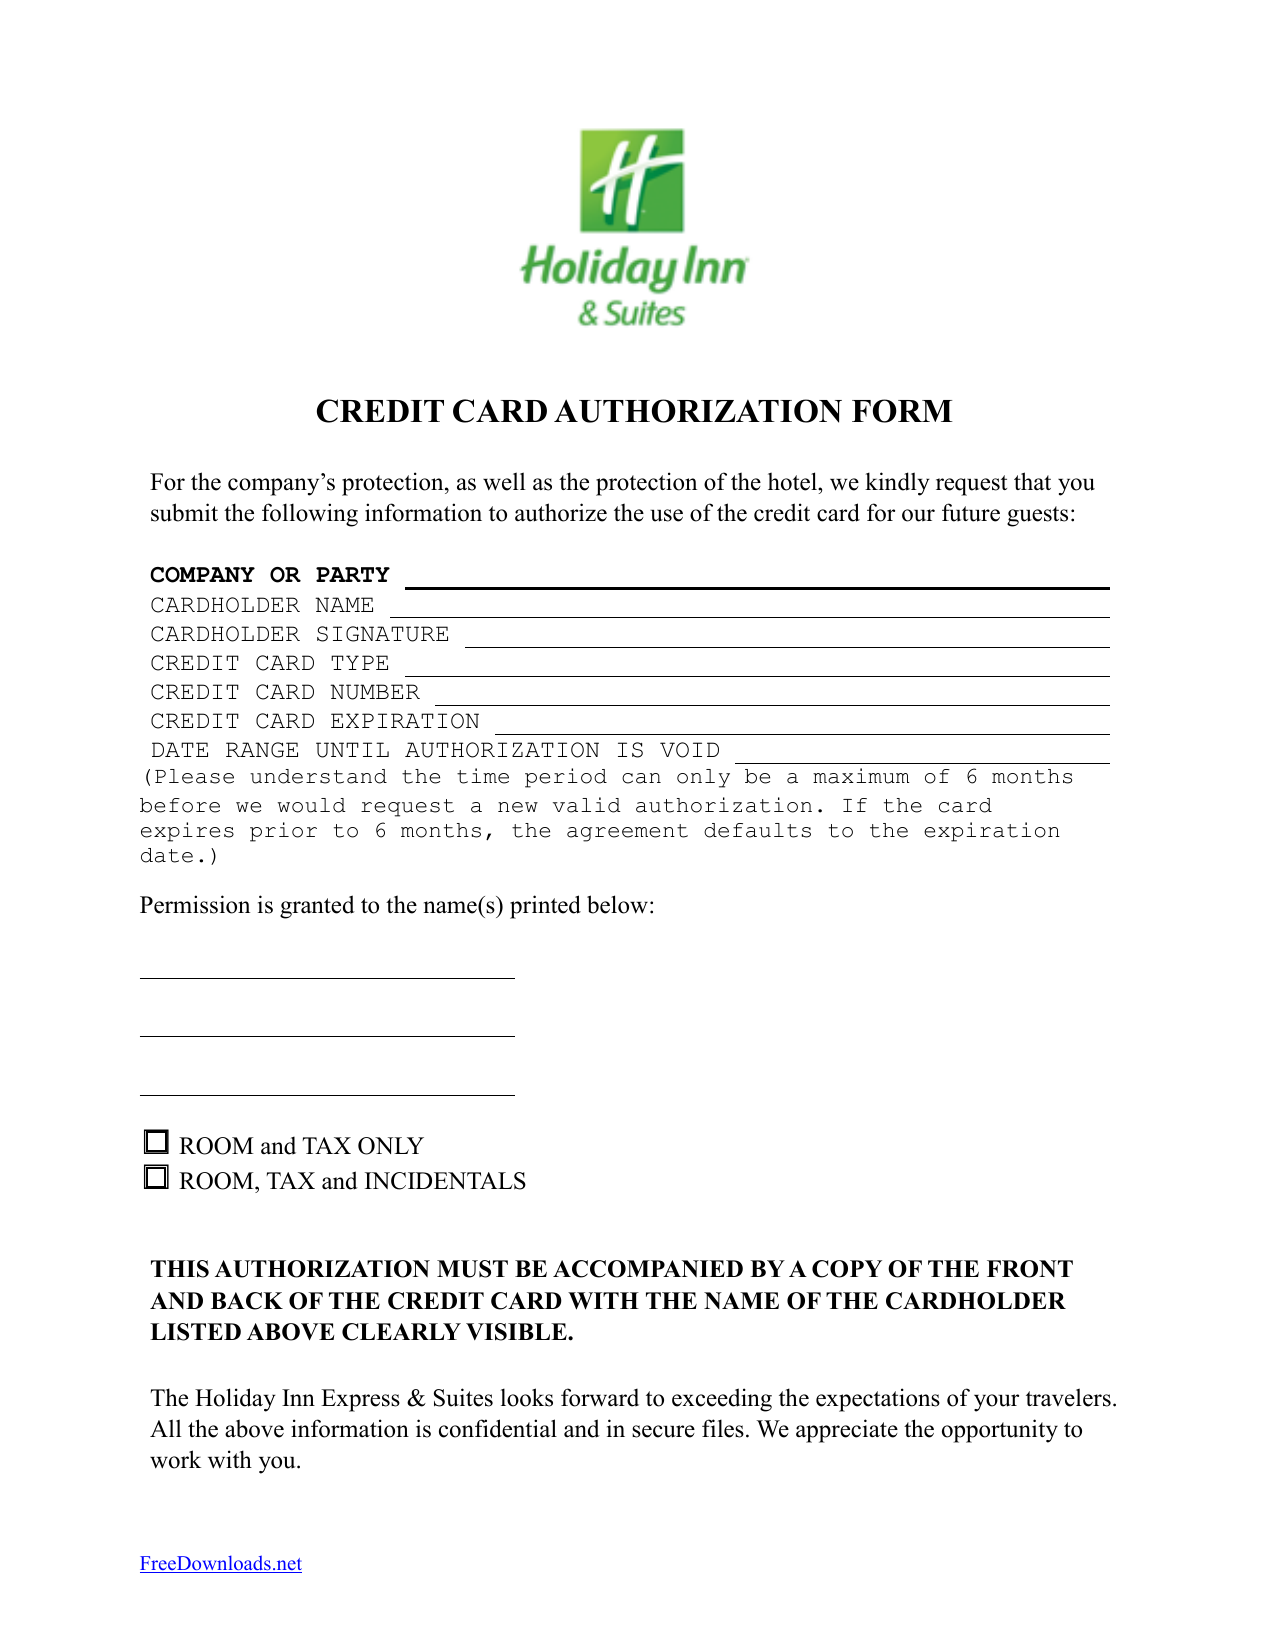 download holiday inn credit card authorization form template